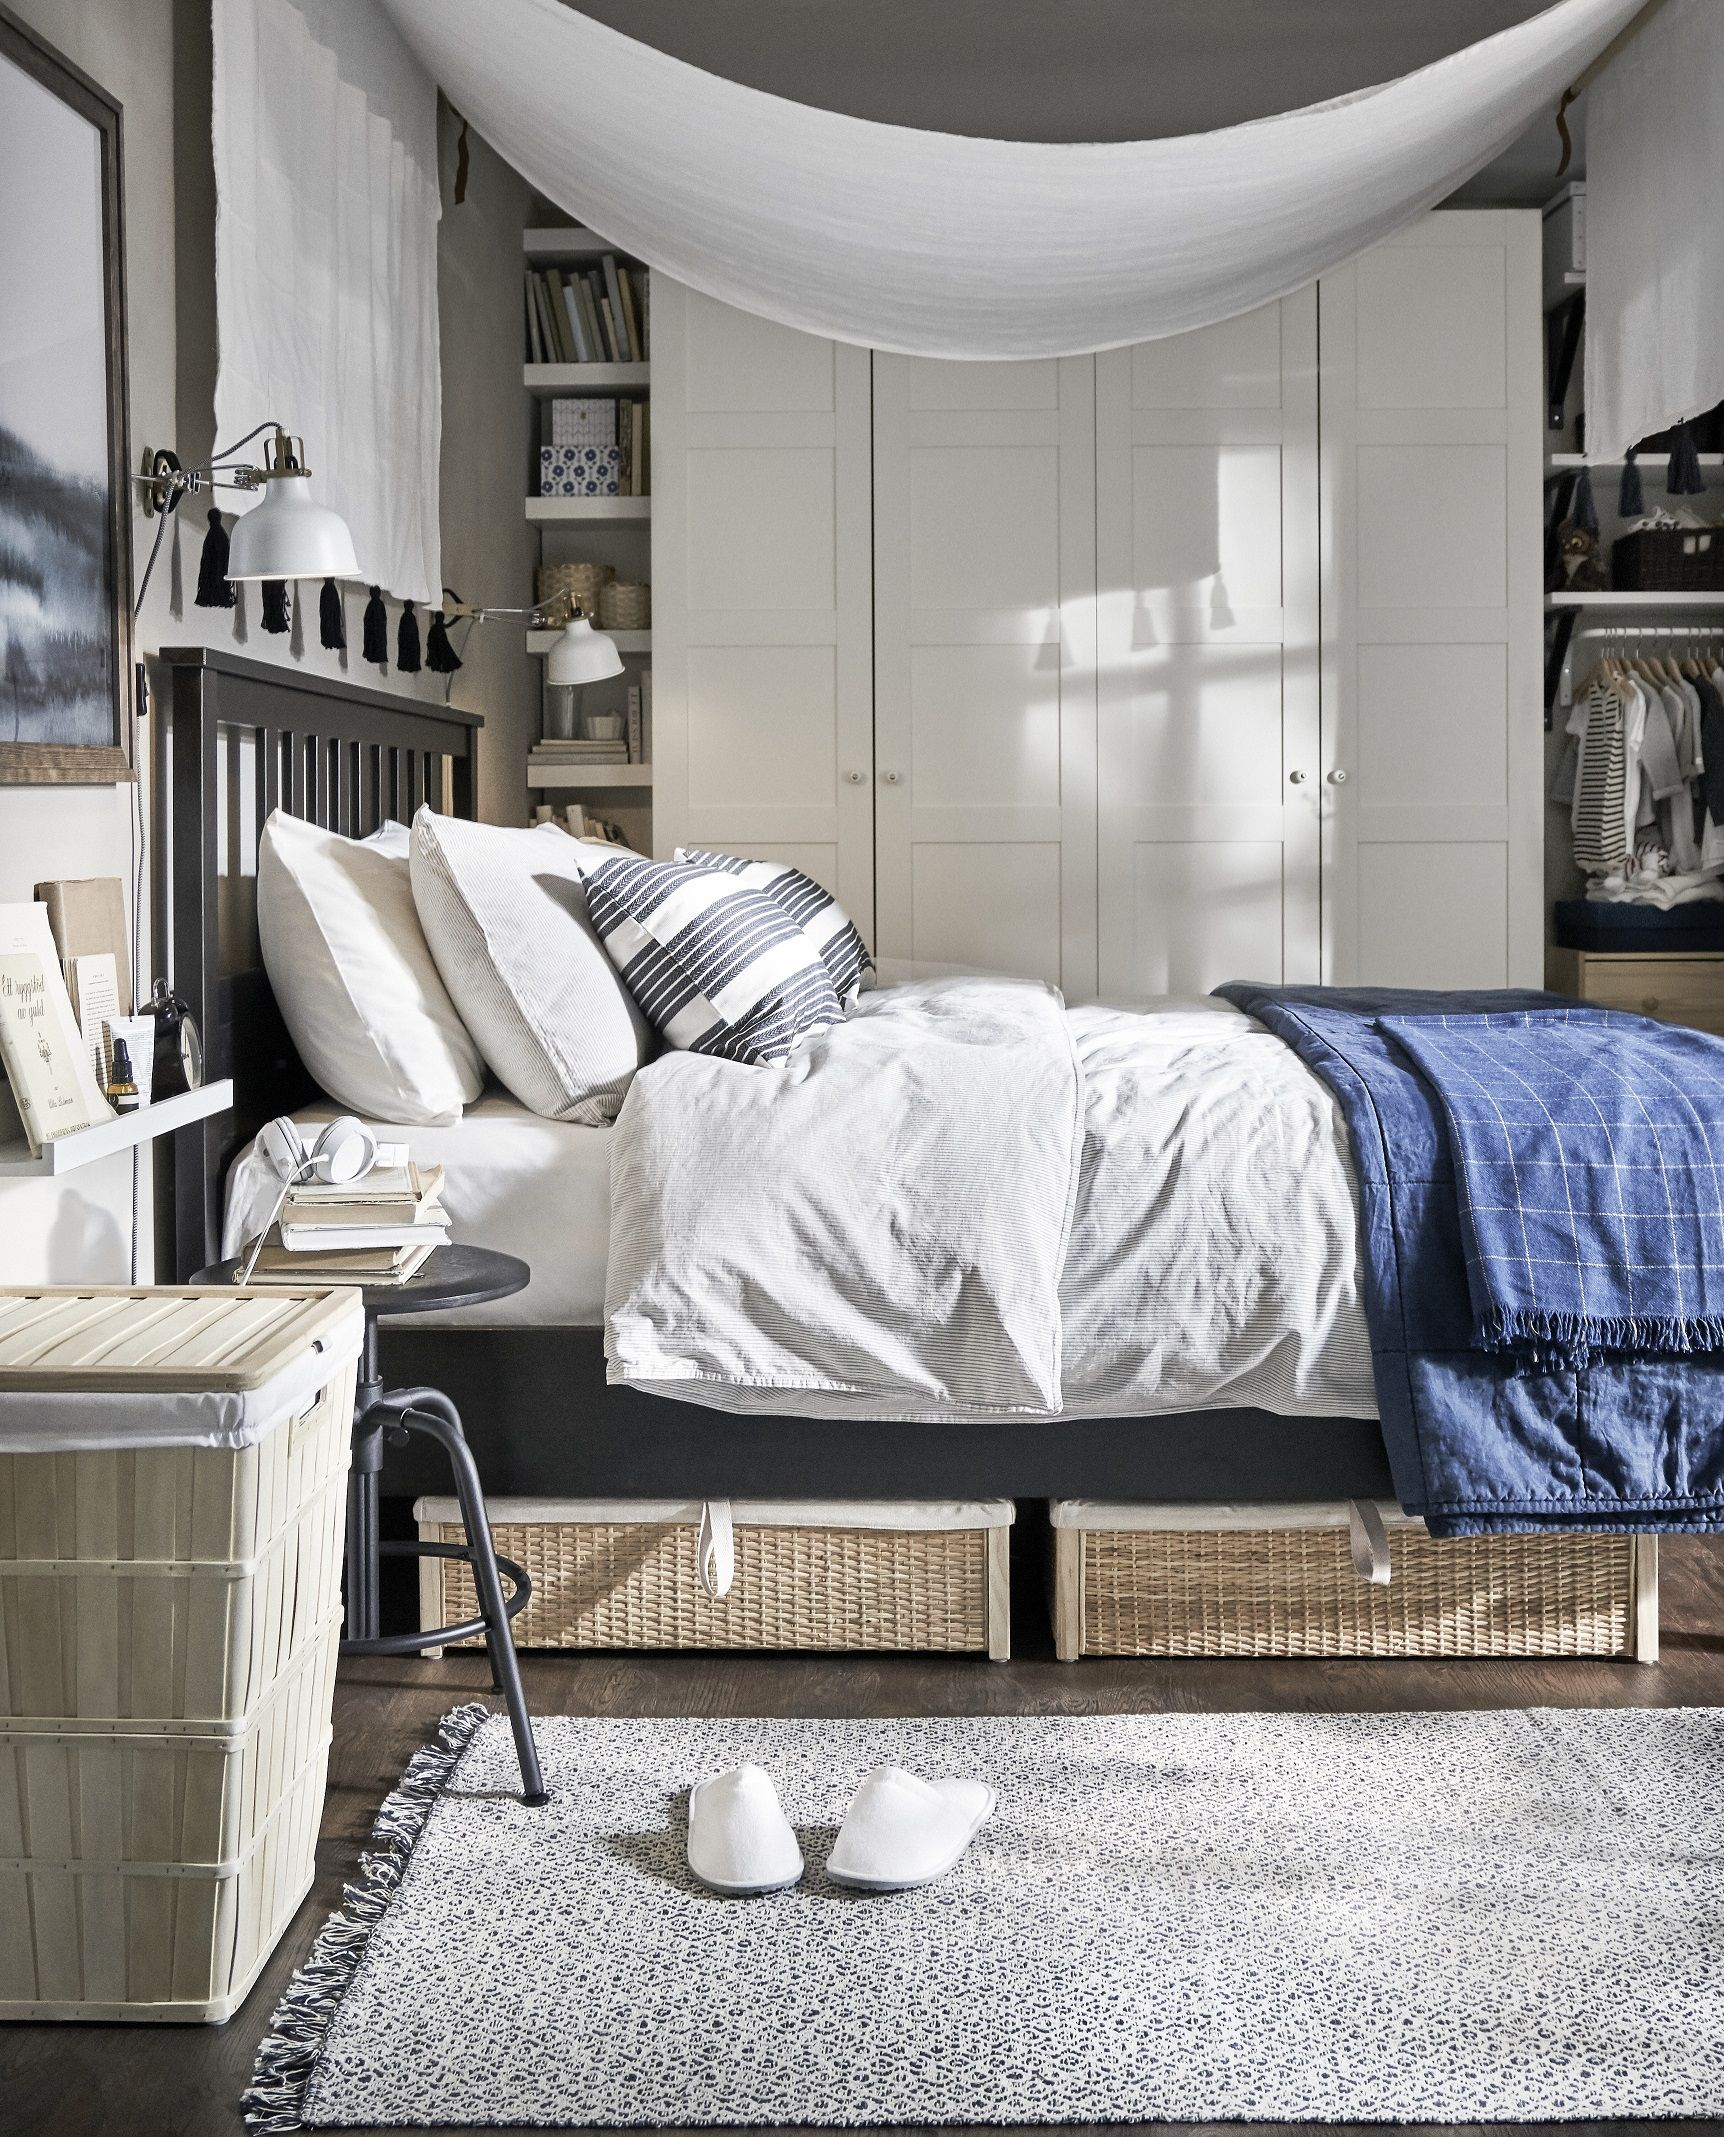 Ikea Catalog 2020 Get Ready For A Fresh Start The Nordroom Ikea Catalog Small Space Organization Ikea